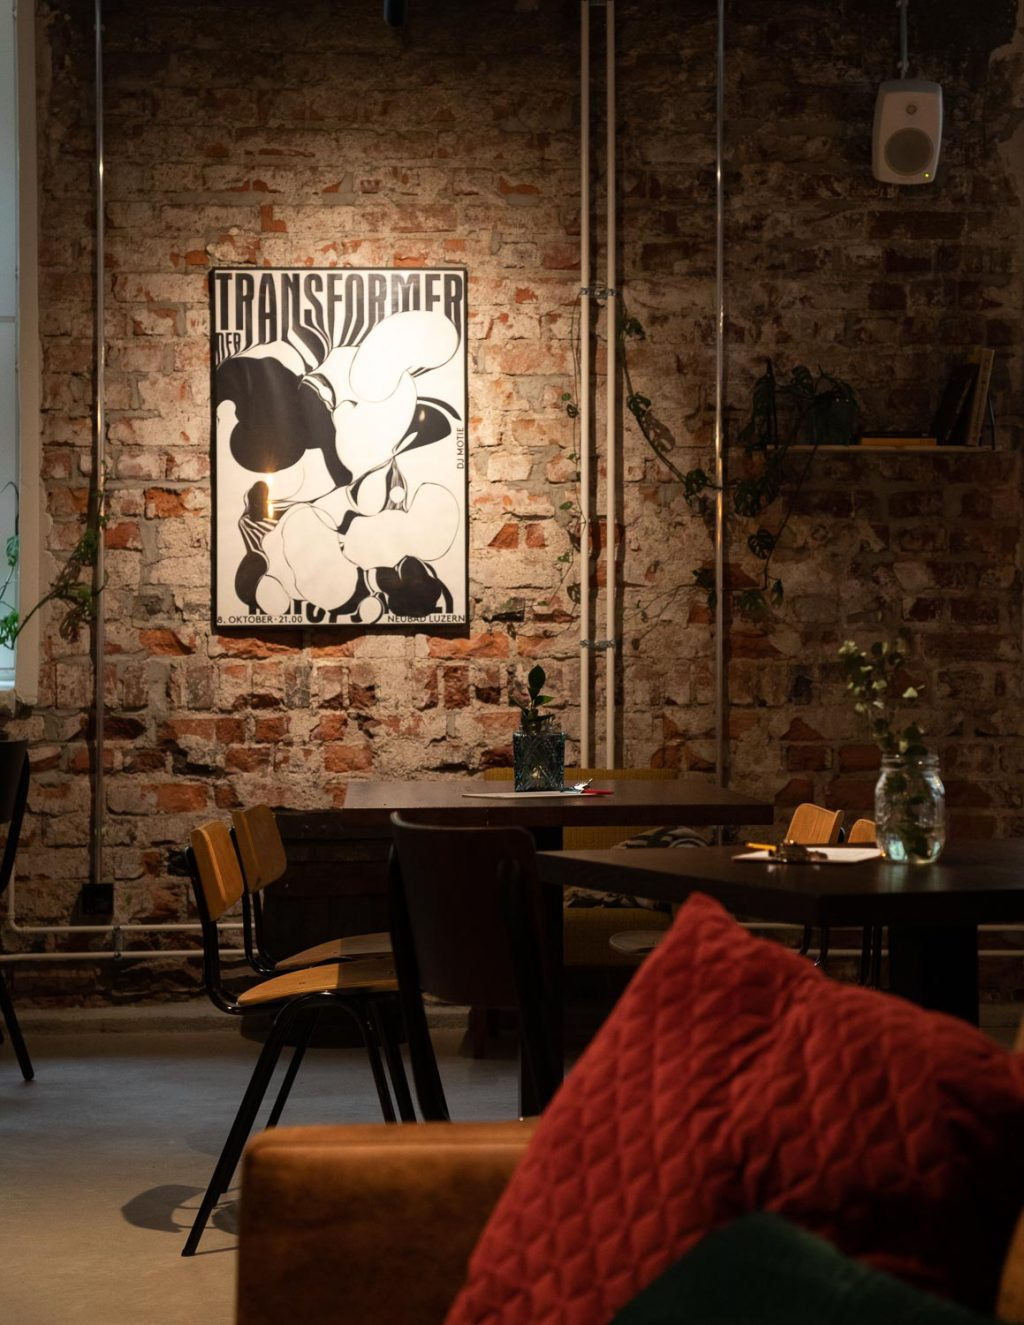 A restaurant. Table groups, mood lighting, a poster on a brick wall. An old radio on a windowsill.